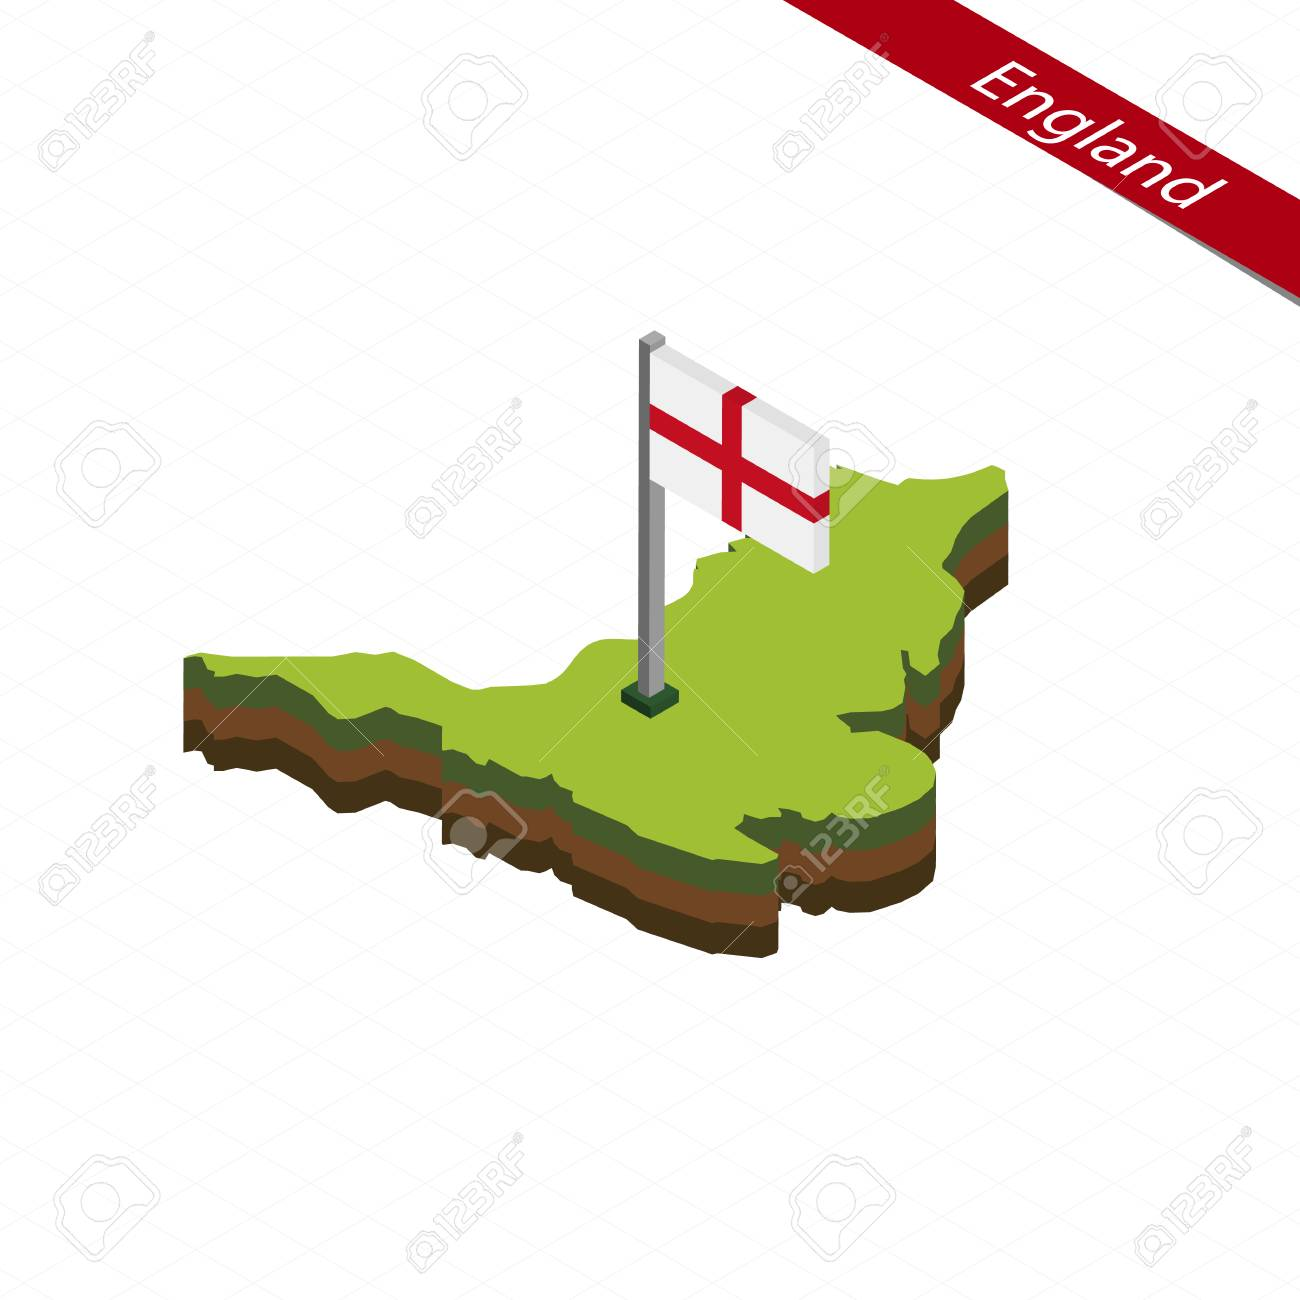 3d Map Of England.Isometric Map And Flag Of England 3d Isometric Shape Of England